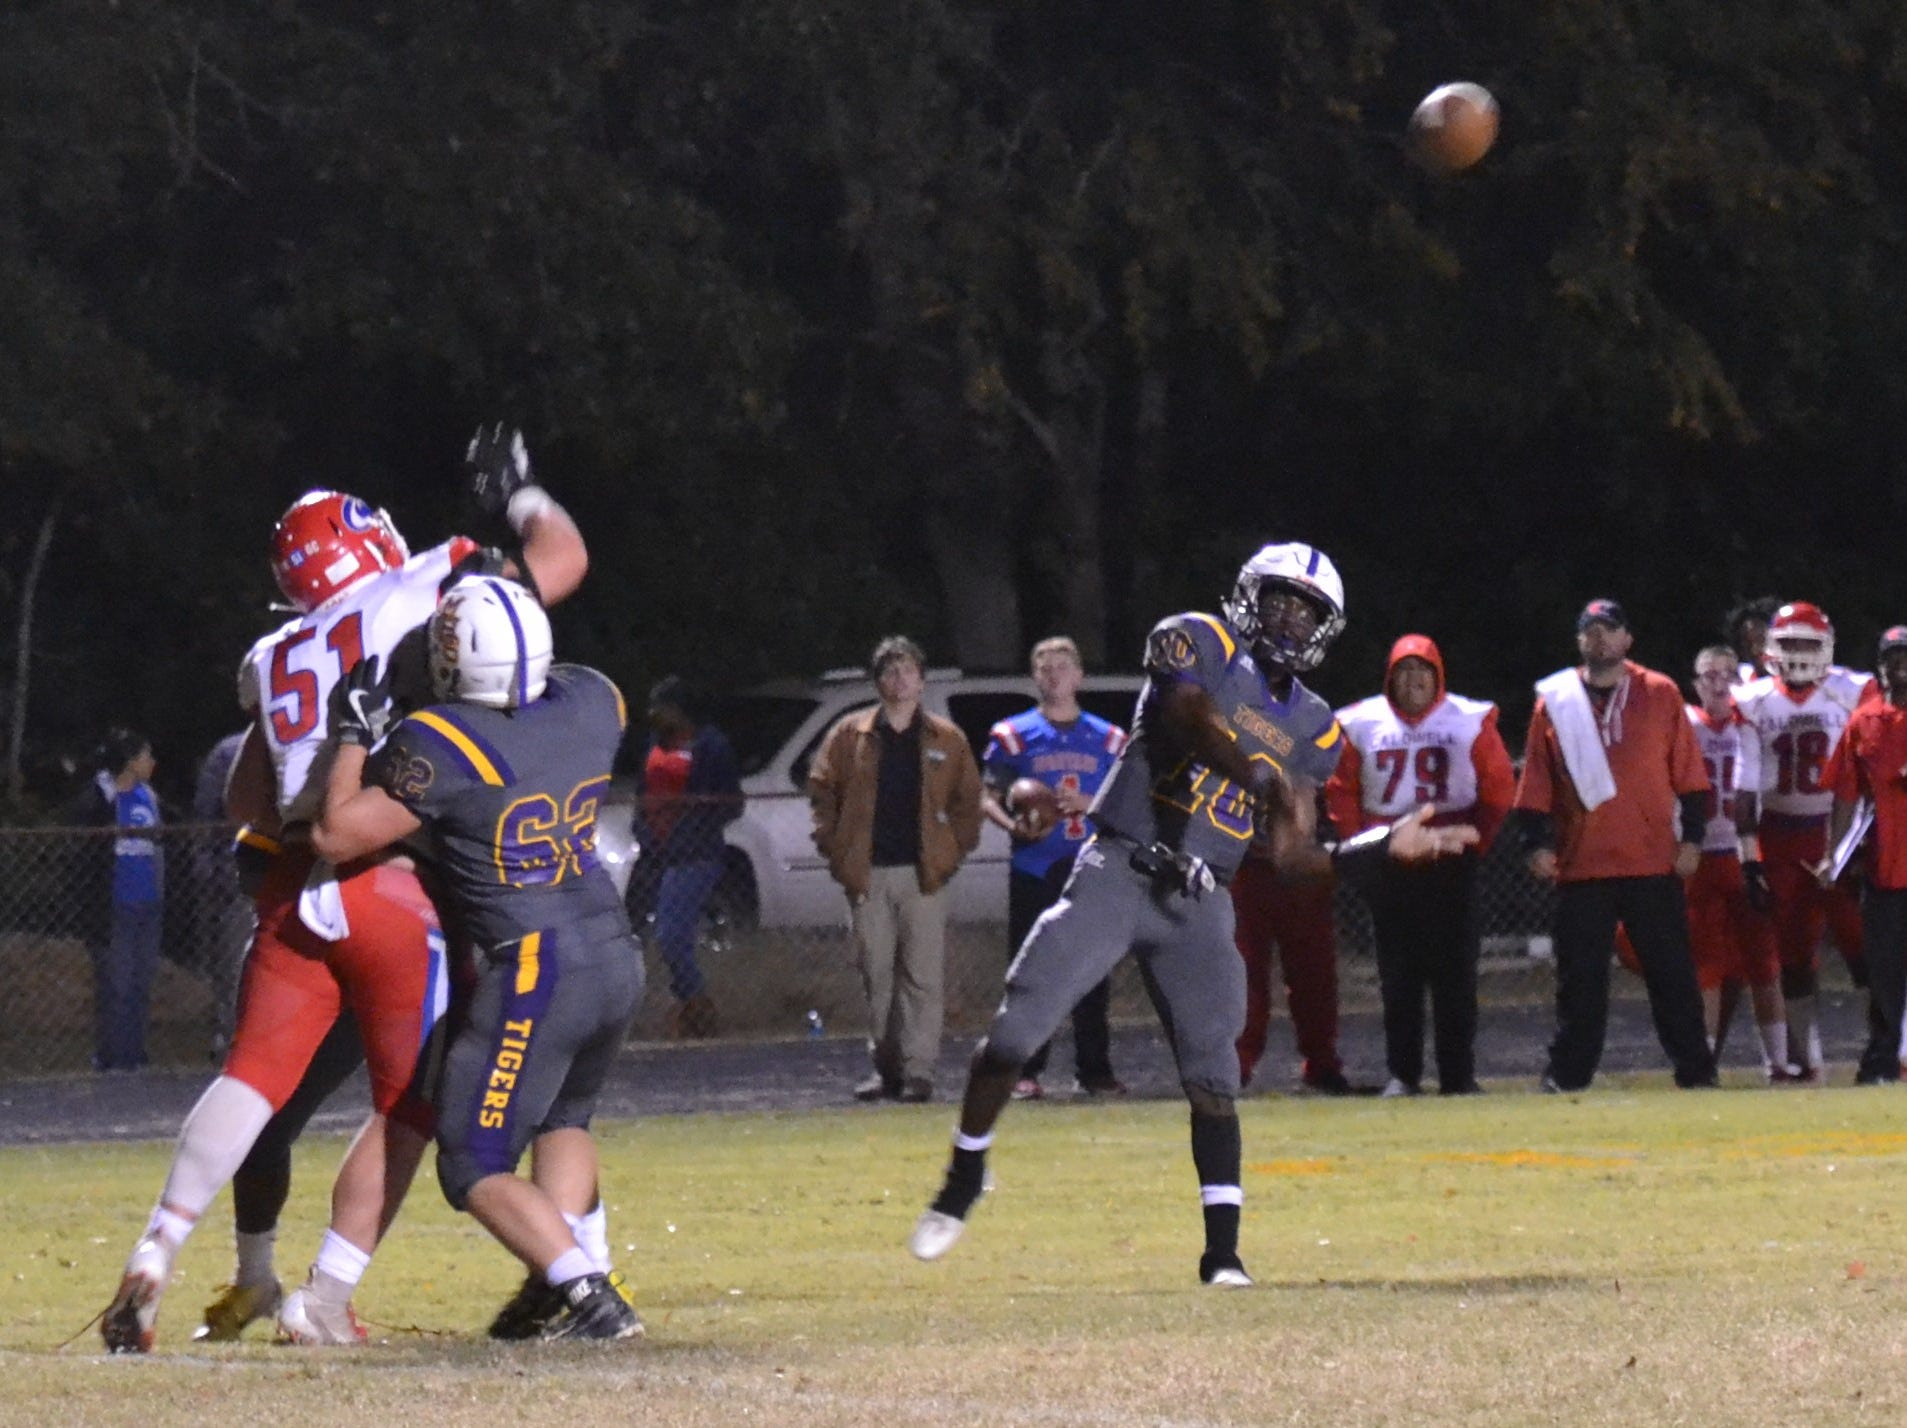 Marksville quarterback Daniel Miller lofts a pass. Marksville and Caldwell met in the regular season finale Friday night with Caldwell edging Marksville 13-8.